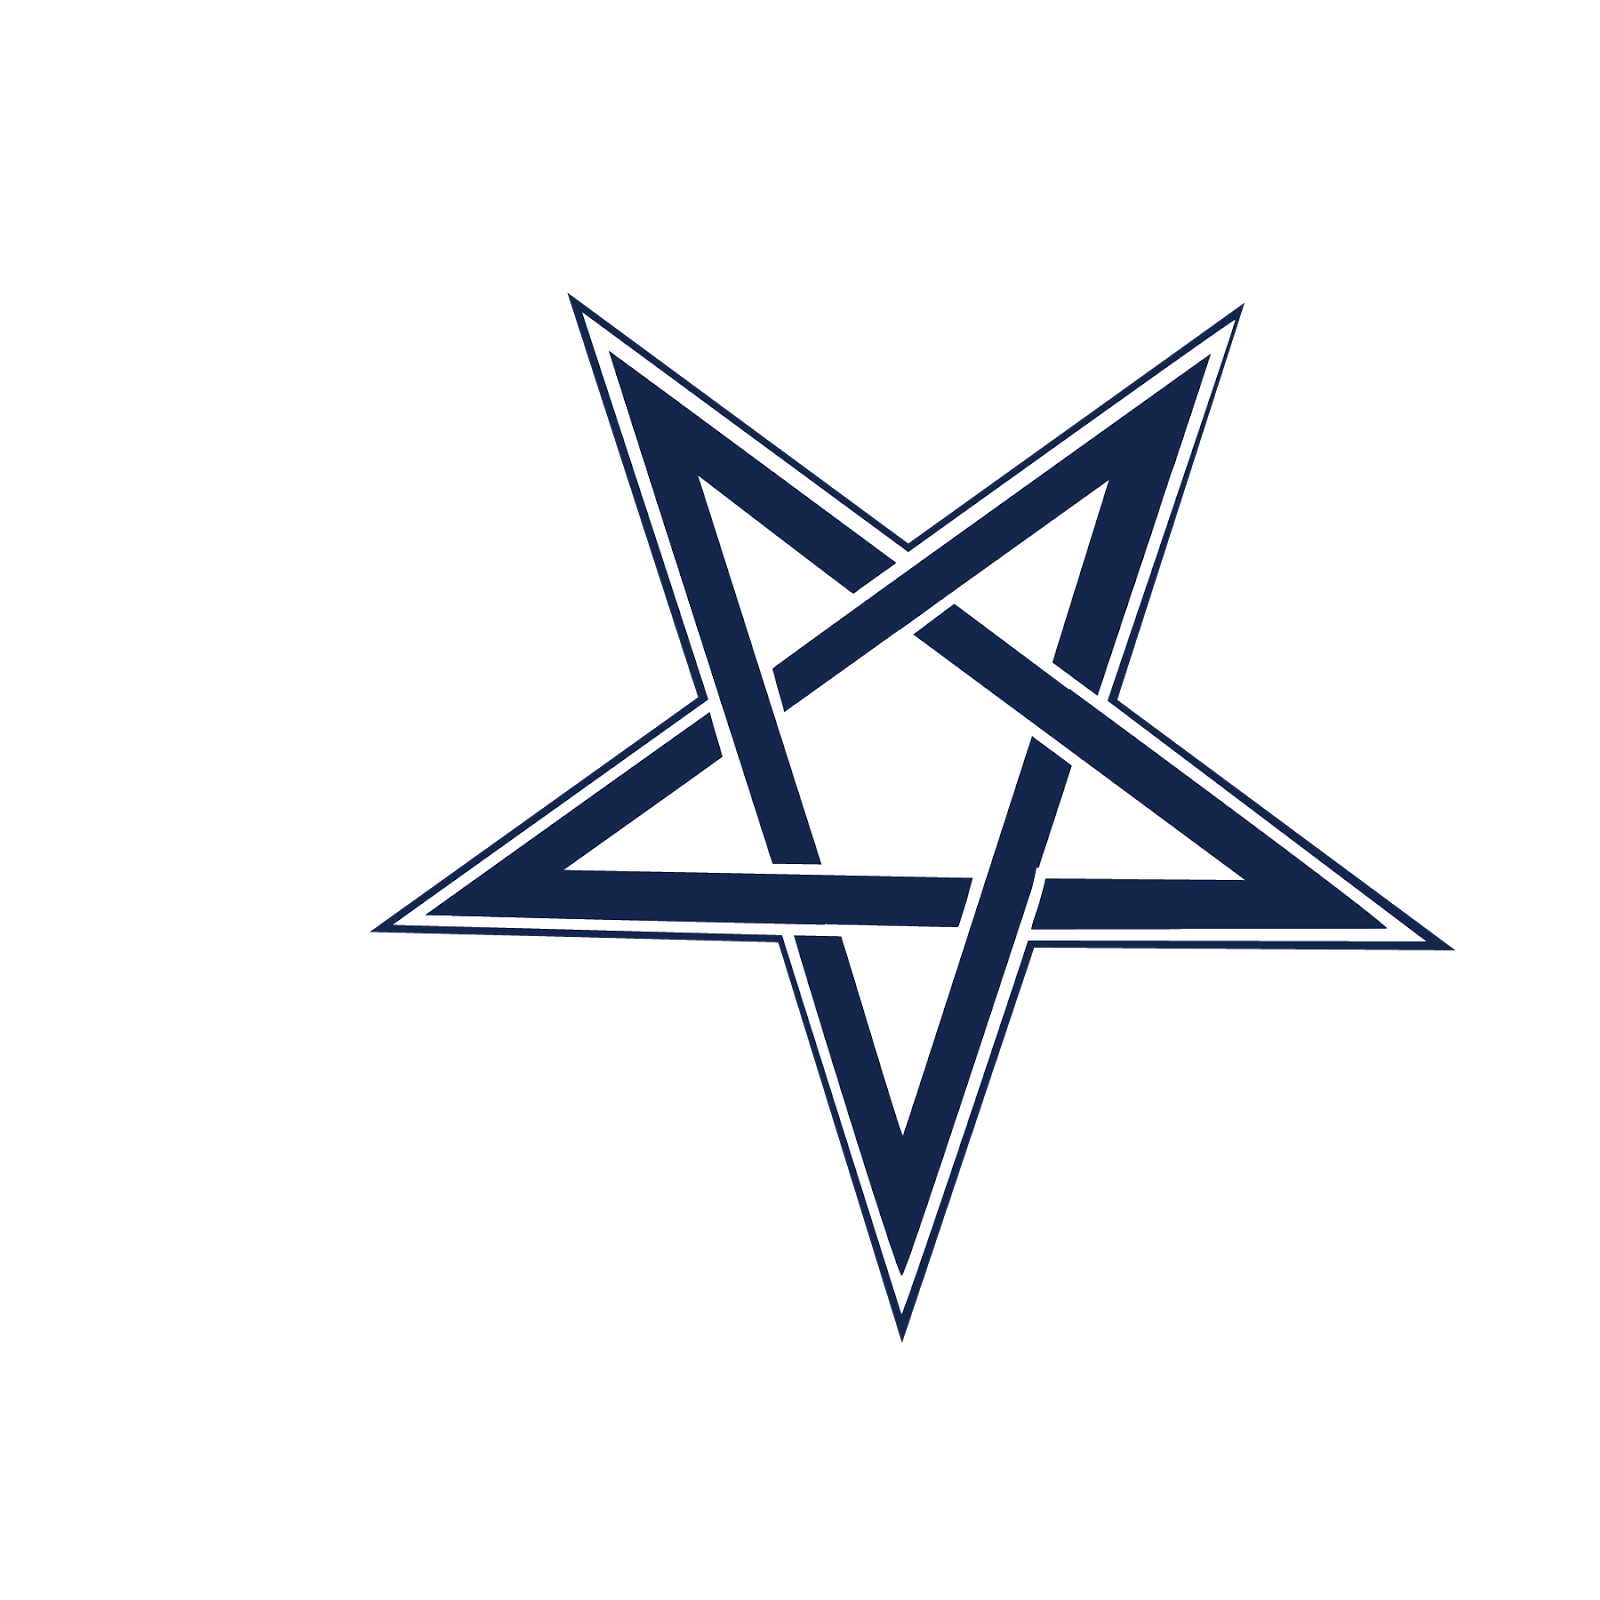 Dallas Cowboys, metal, logo, re-imagined